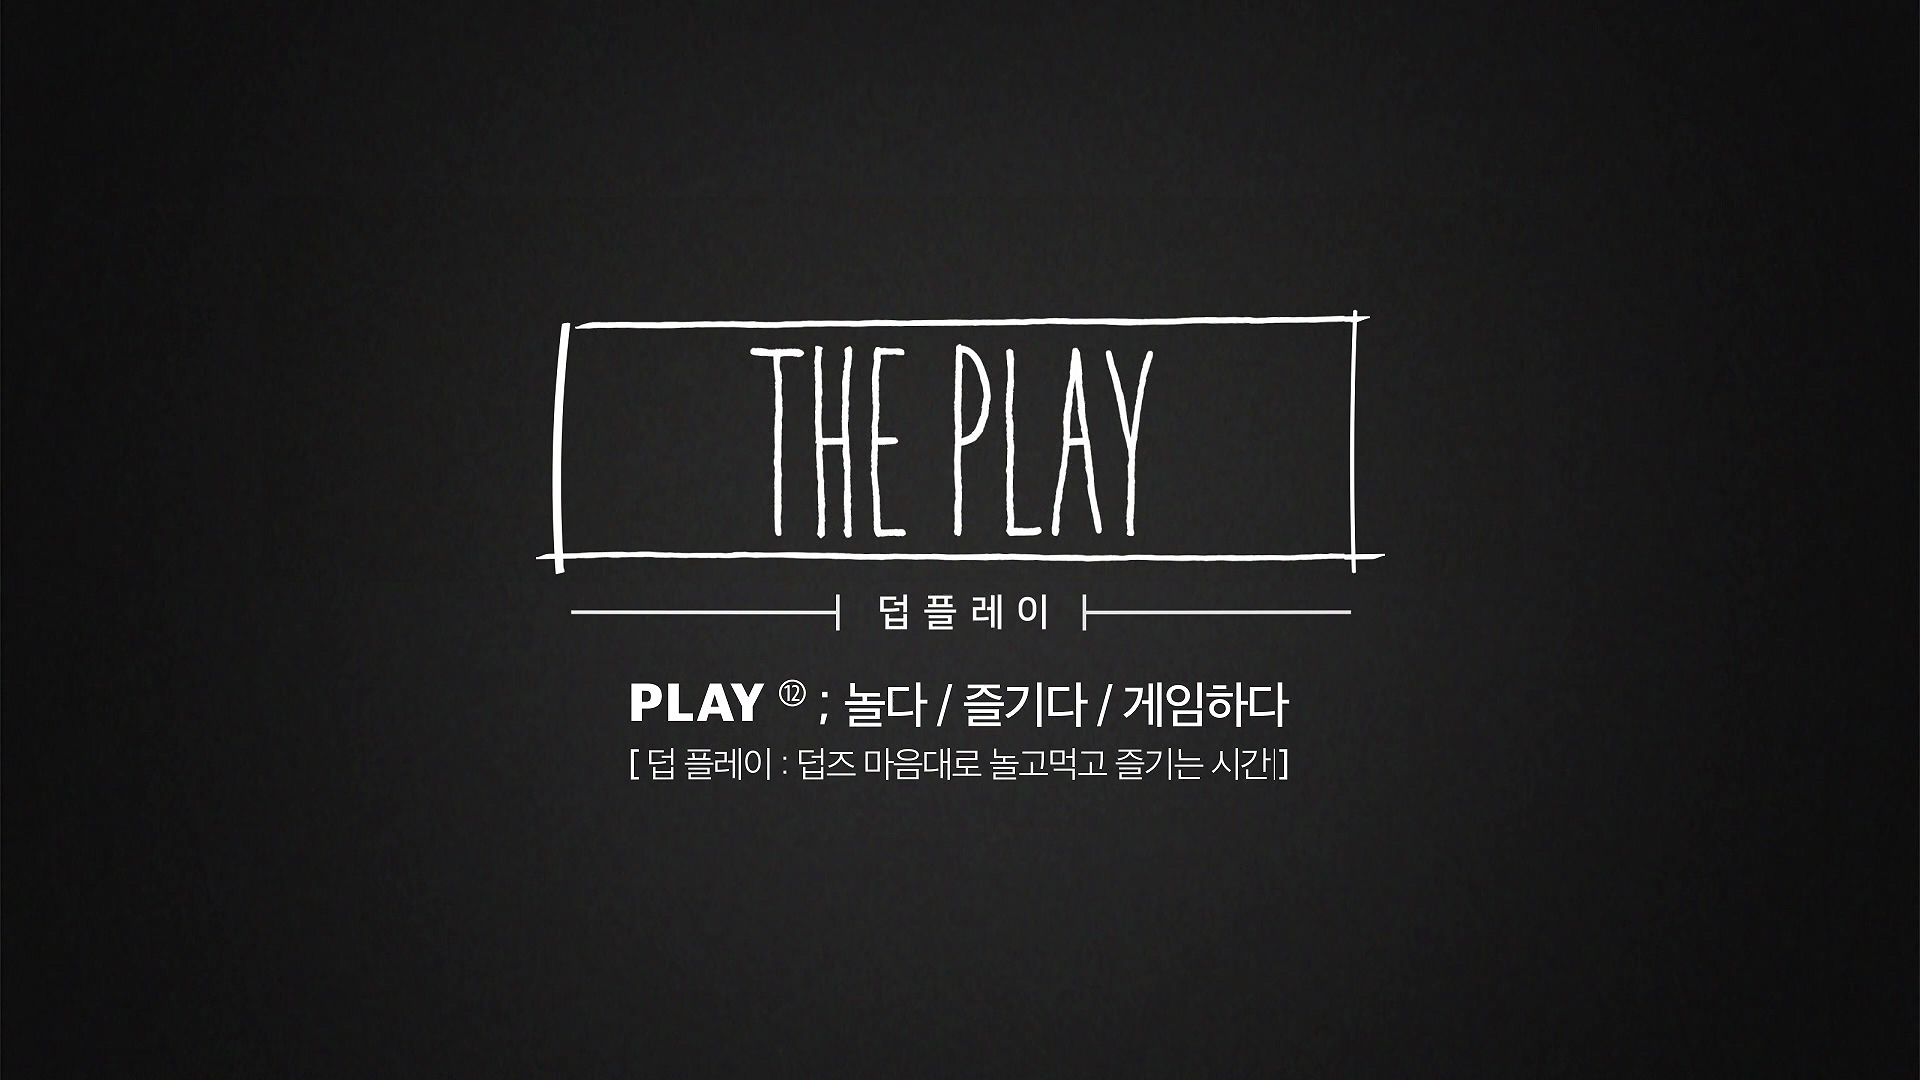 [덥:플레이(THE PLAY)] EP.2 Children's Day SP - 영훈&케빈&뉴 (YOUNGHOON&KEVIN&NEW)